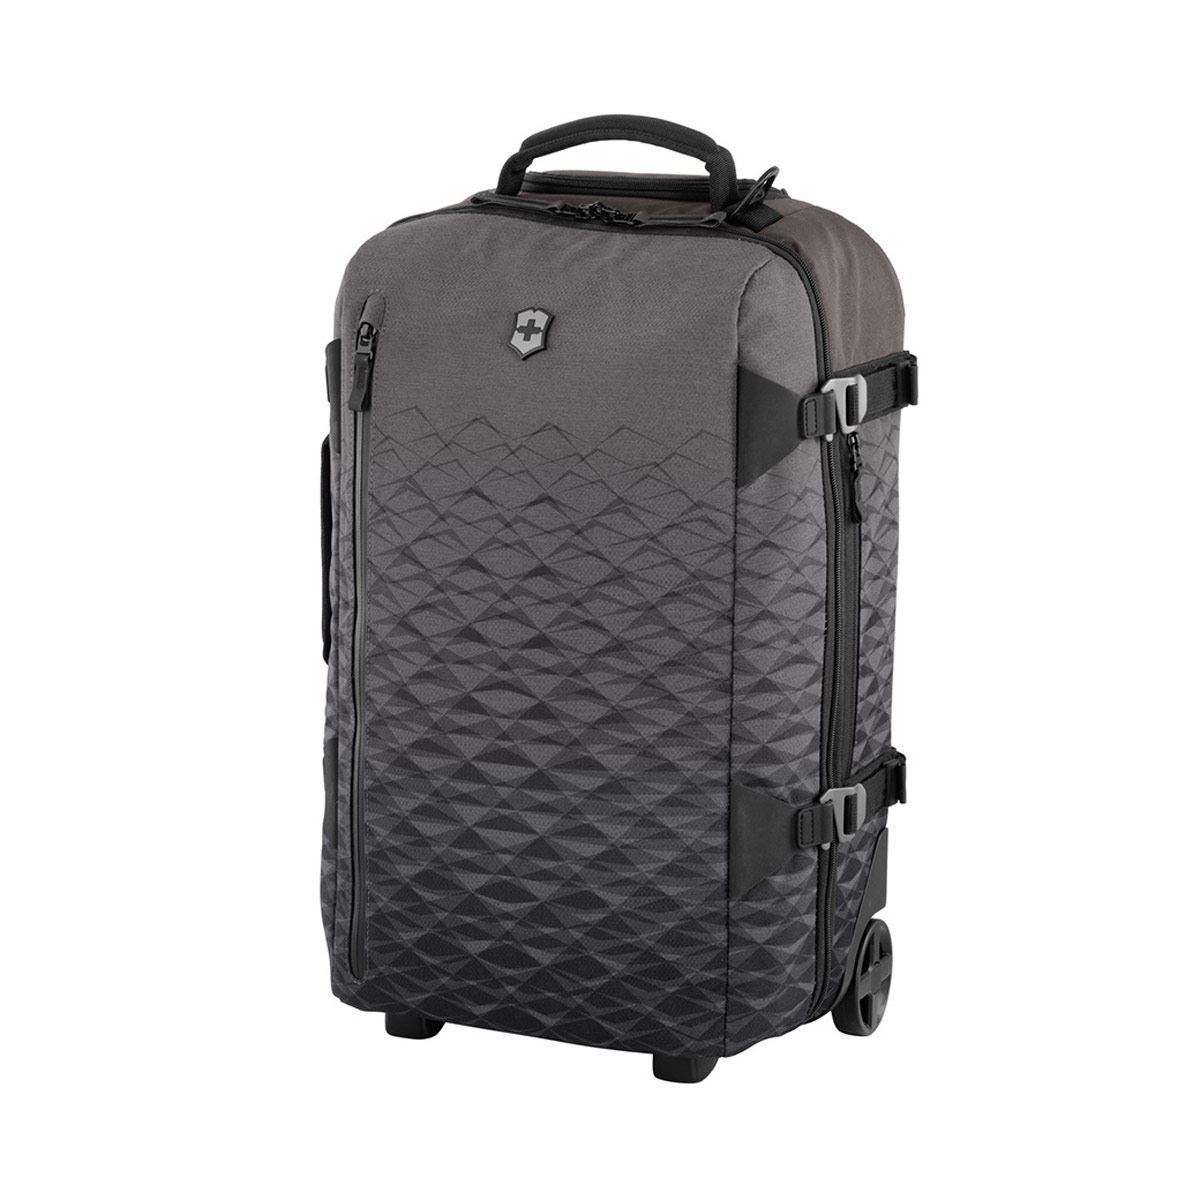 Vx Touring, Wheeled Global Carry-On, Anthracite